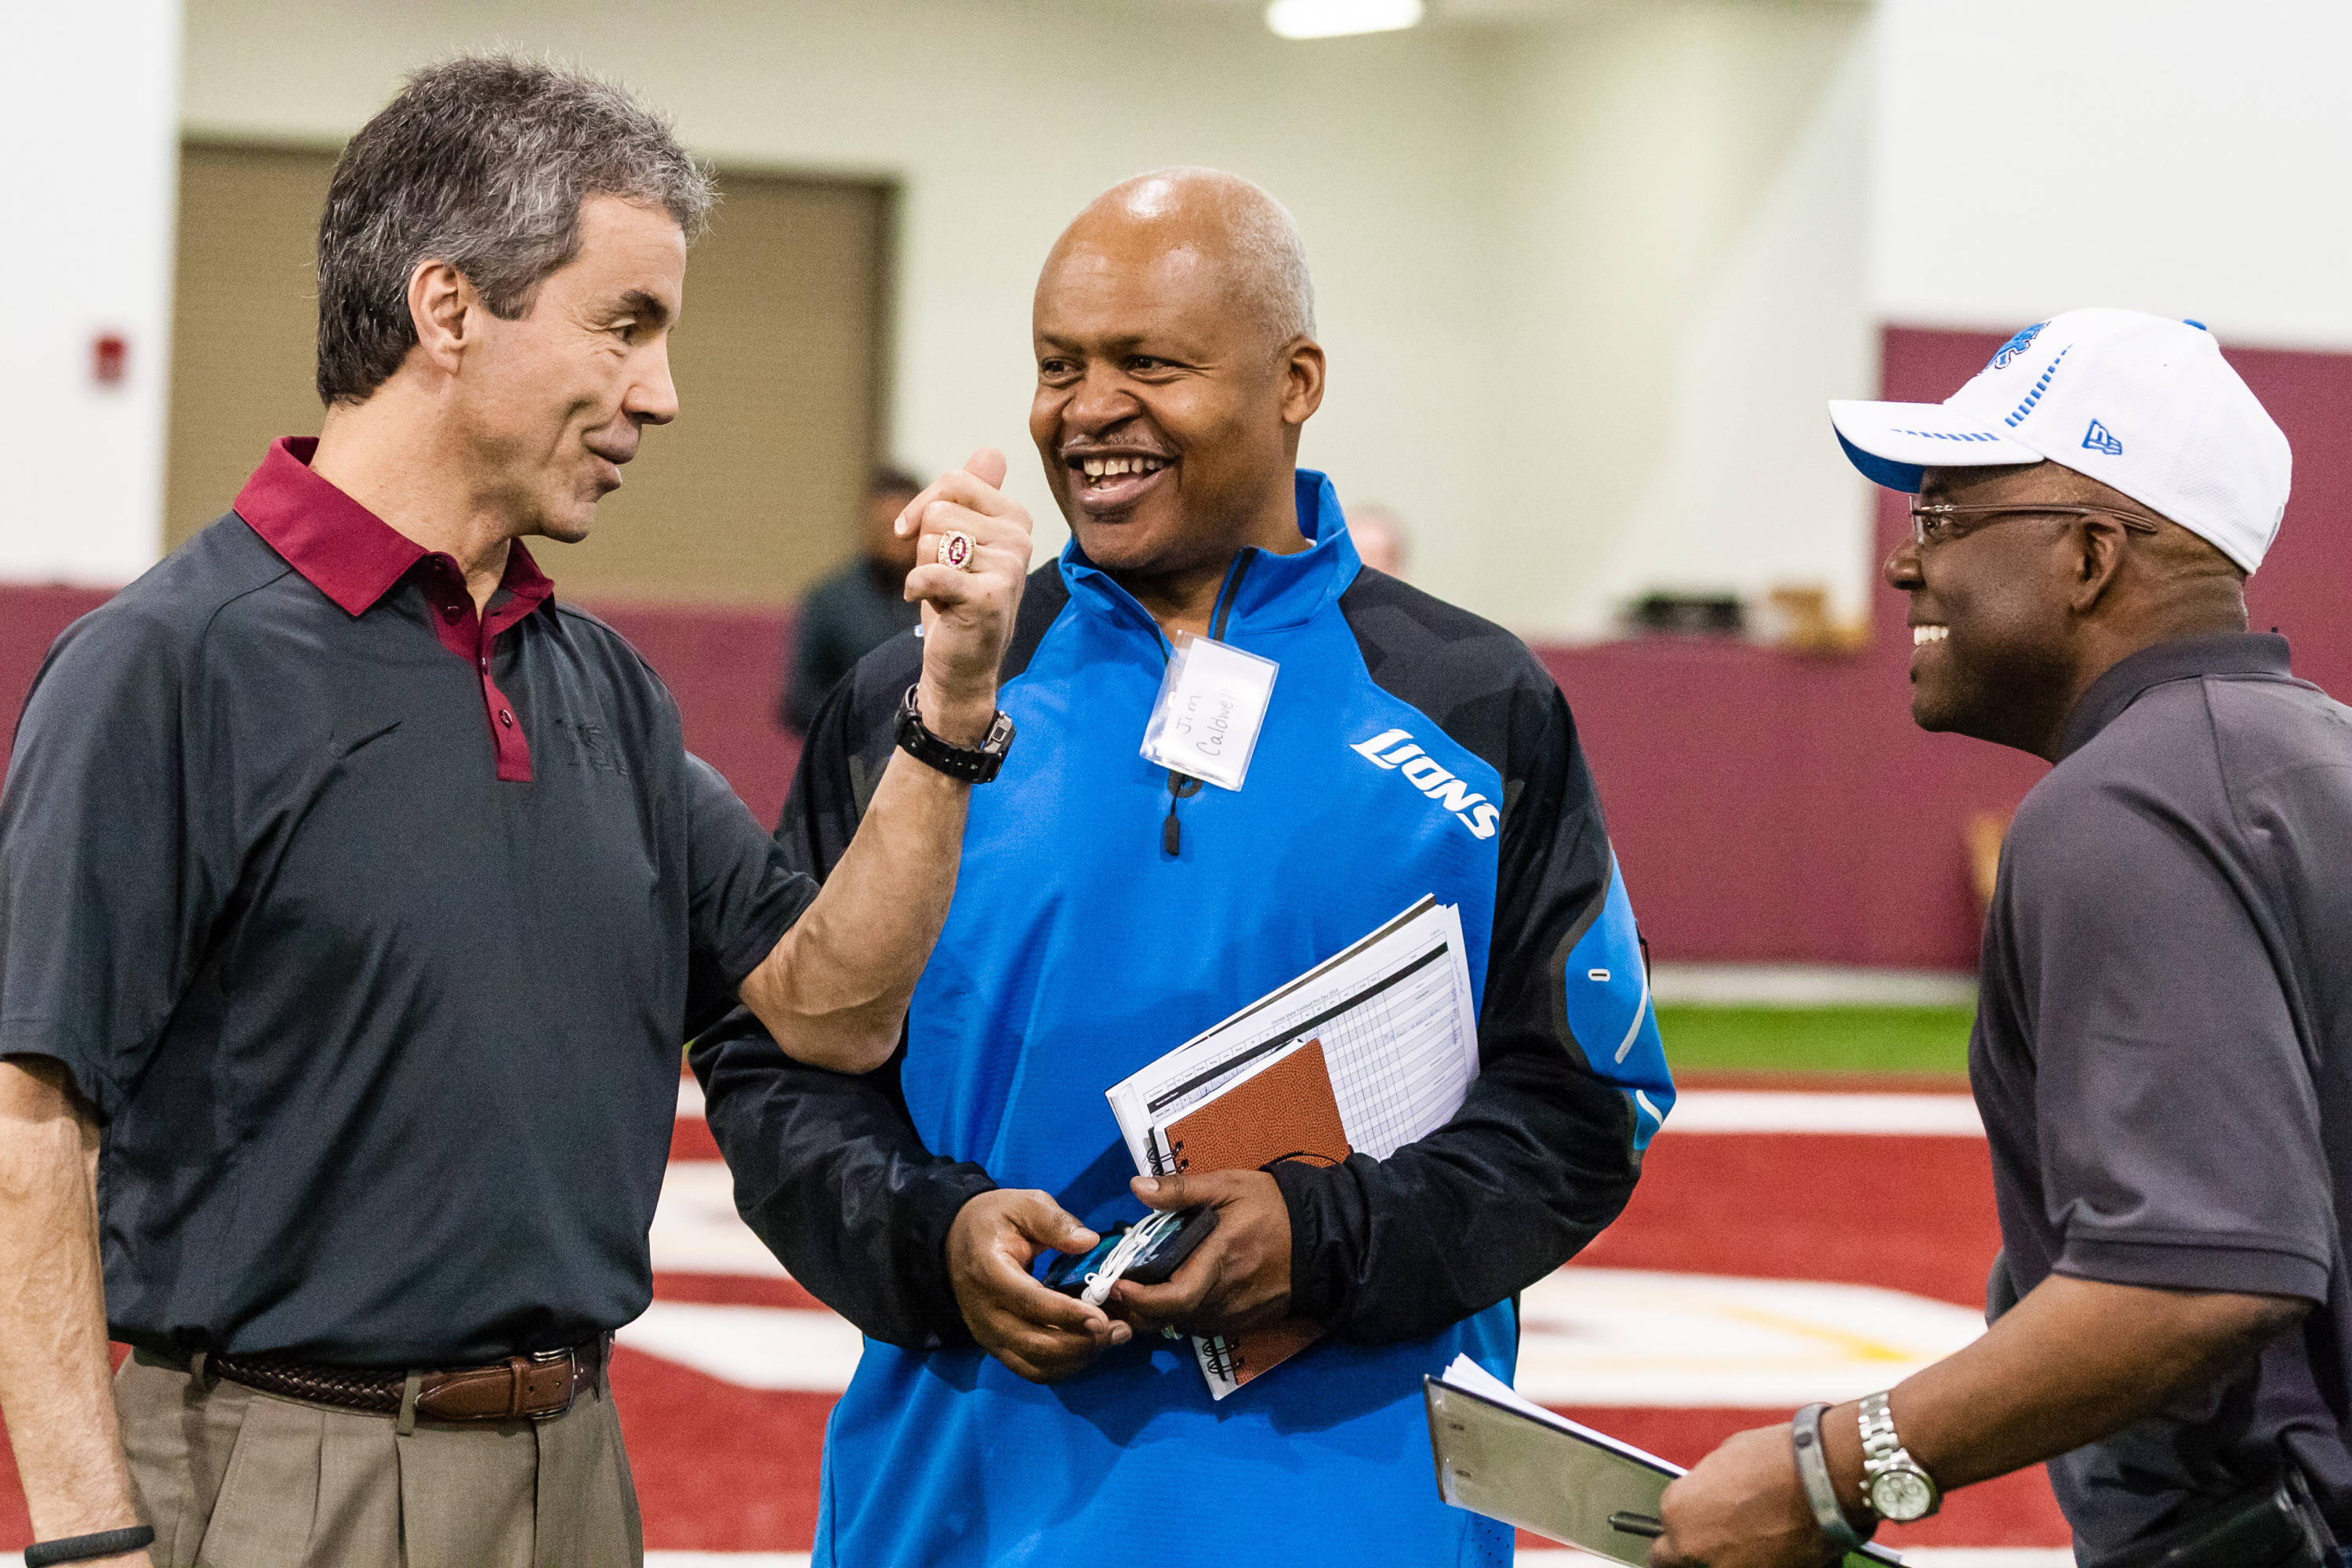 FSU Senior Associate Athletics Director Monk Bonasorte and Detroit Lions coach Jim Caldwell